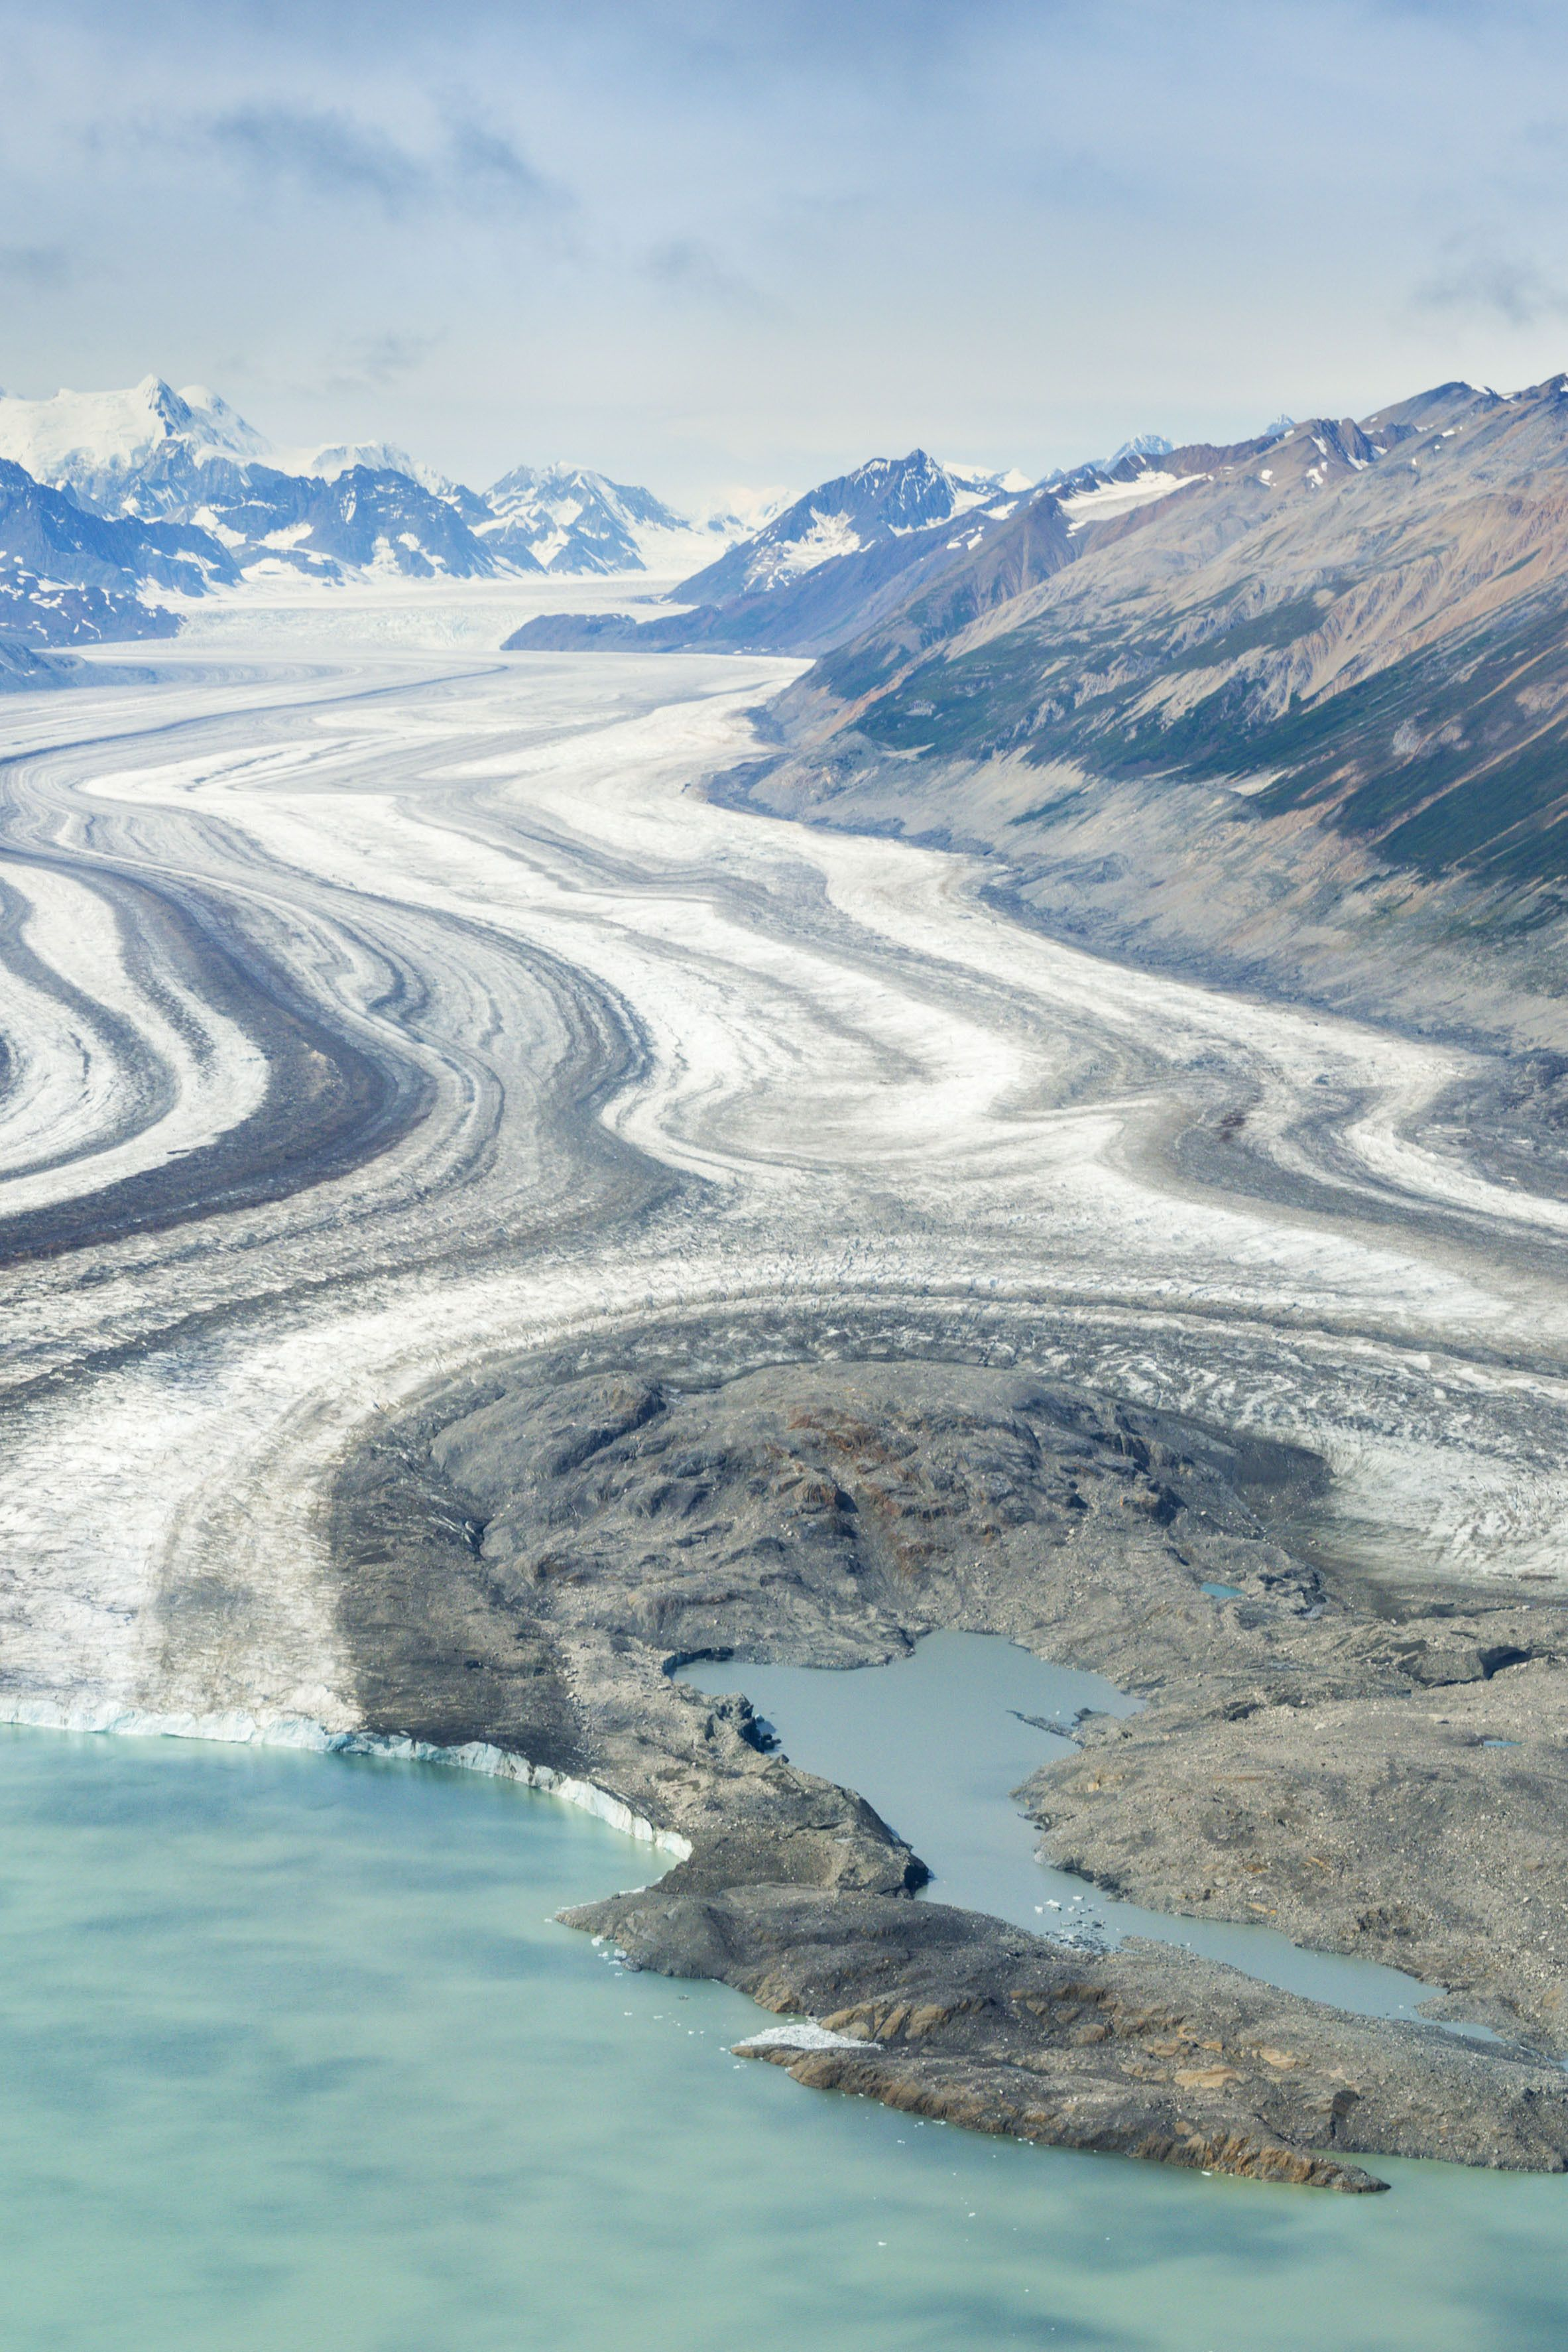 The terminus of the Kluane Glacier in Yukon from top to